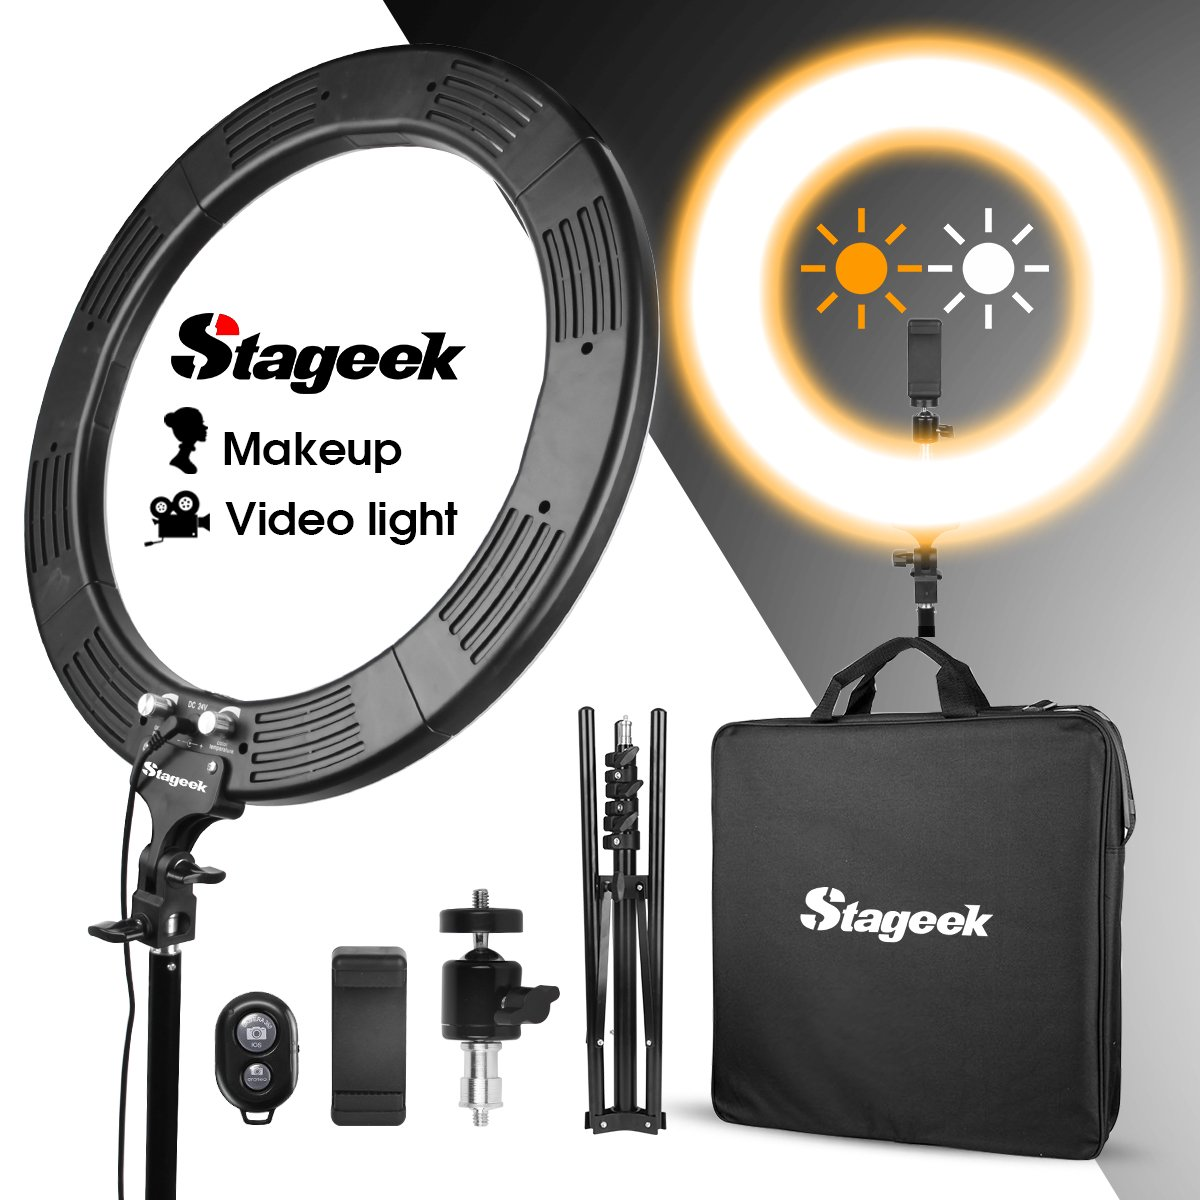 LED Ring Light, Stageek 18'' Dimmable SMD LED Ring Light, 60W 5600K Bi-Color Camera Photo Video Lighting Kit with Tripod Stand, Phone Holder, for Smartphone,Youtube, Self-Portrait Makeup Video Shooting